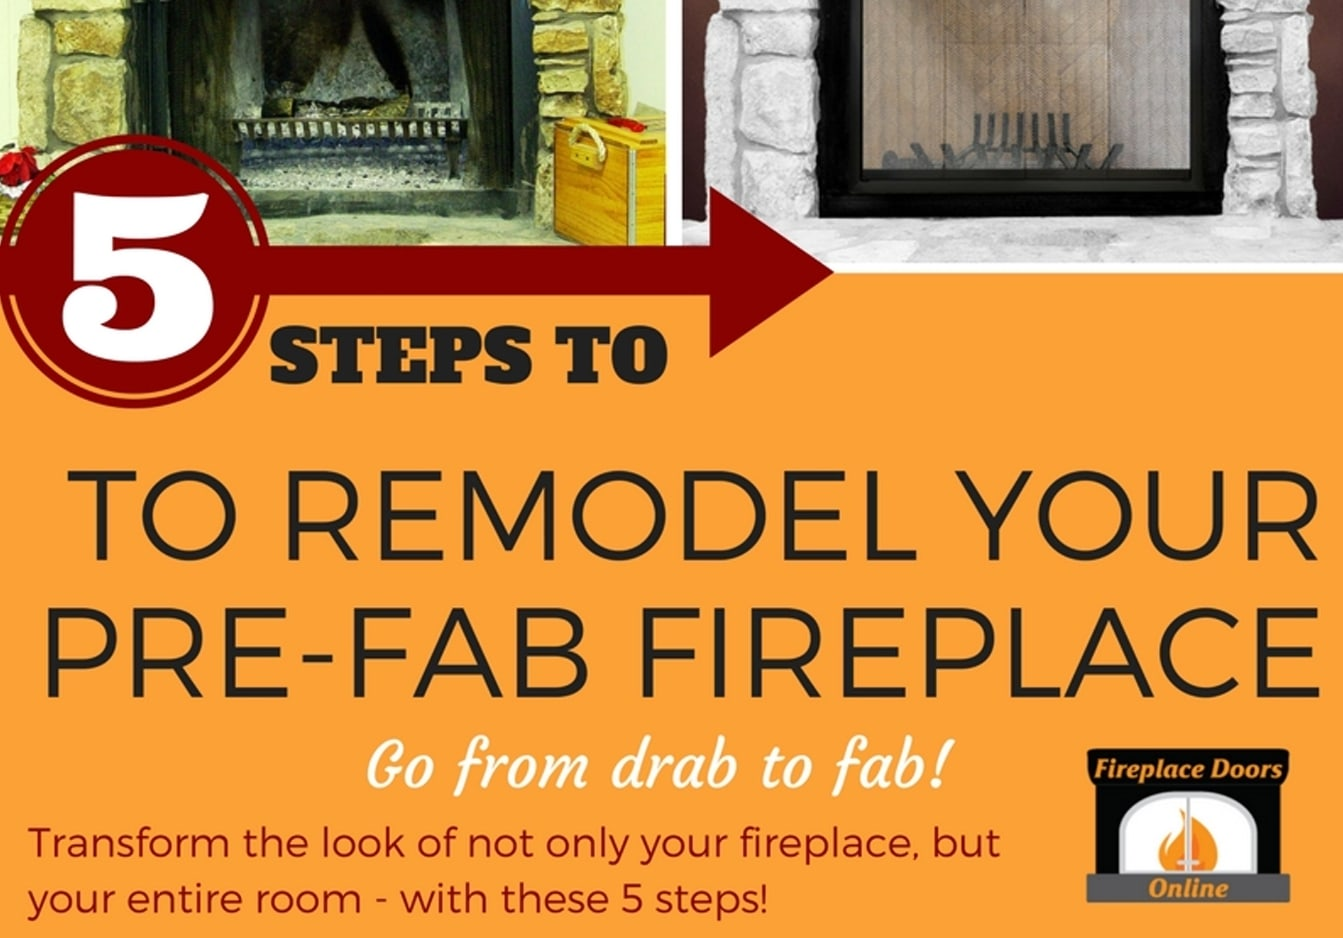 5 Steps To Remodeling A Pre-Fab Fireplace